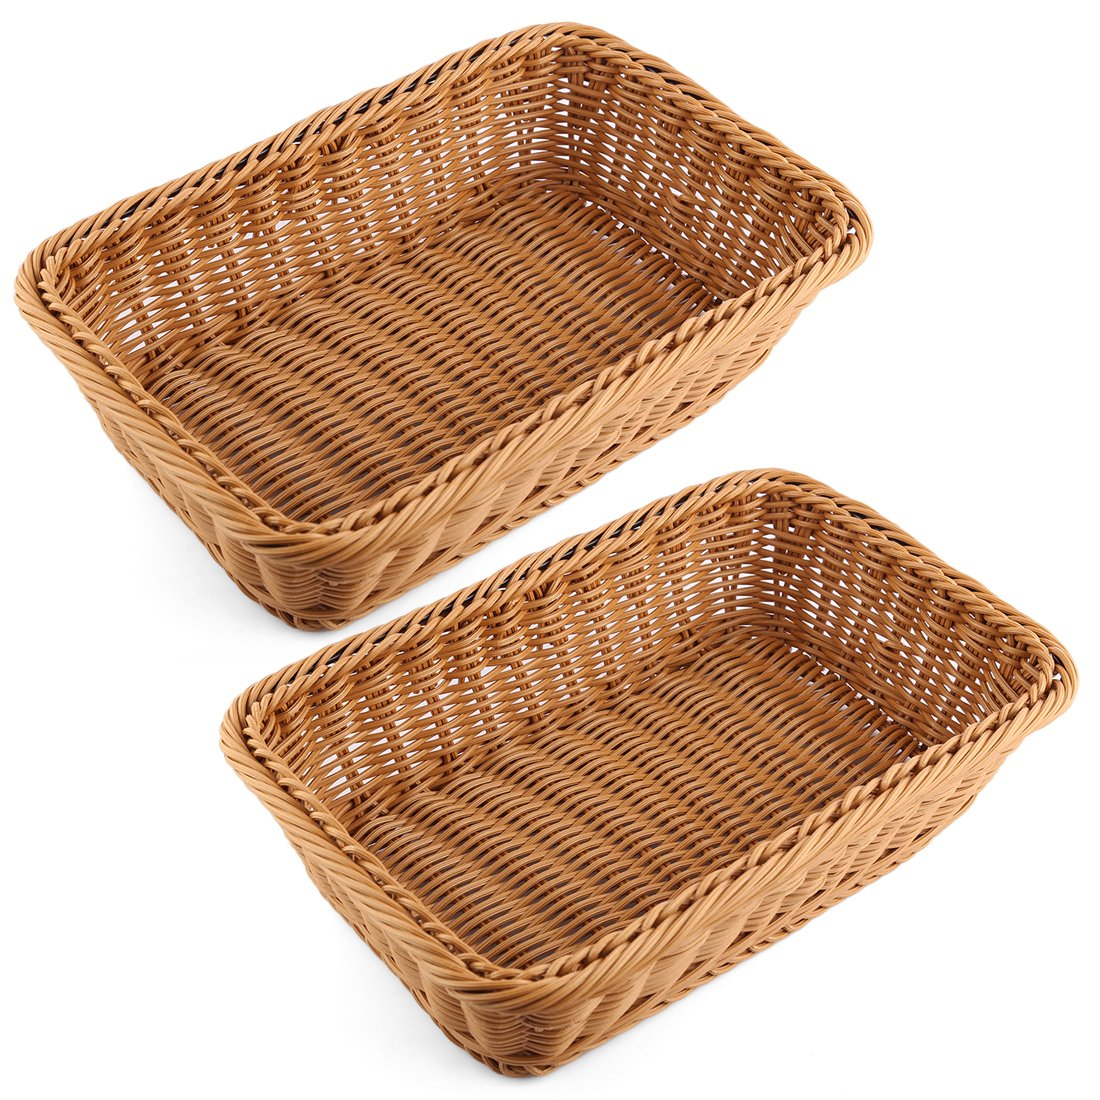 PeleusTech Bread Basket, 2PCS Rectangle Imitation Rattan Woven Storage Basket For Fruit Food Vegetables Large Poly Wicker Bread Basket -